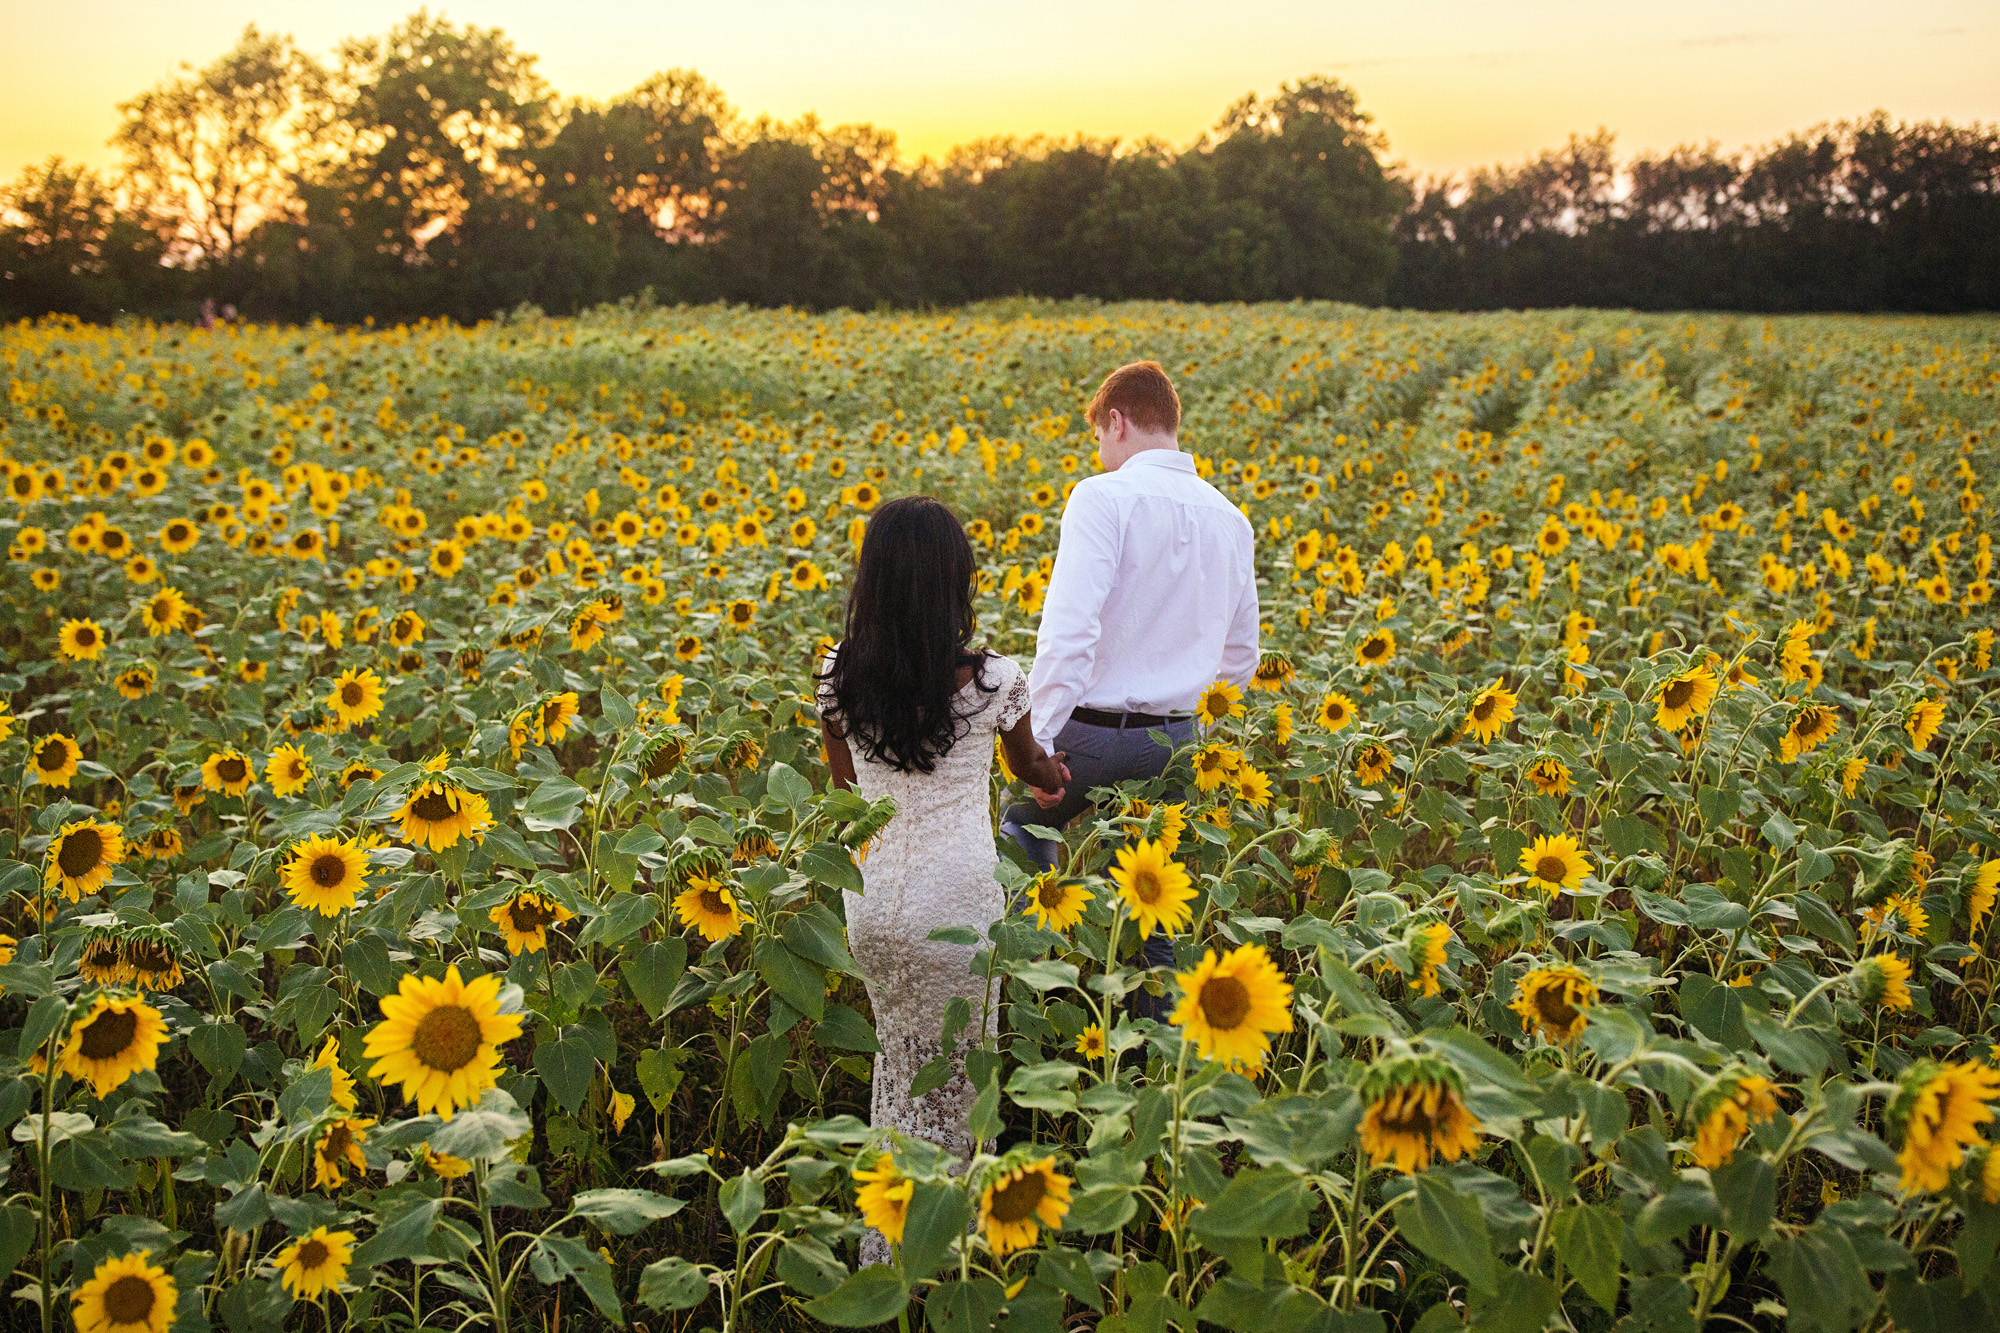 Seriously_Sabrina_Photography_Lexington_Midway_Kentucky_Engagement_Merefield_Sunflowers_Naz_and_Drew36.jpg